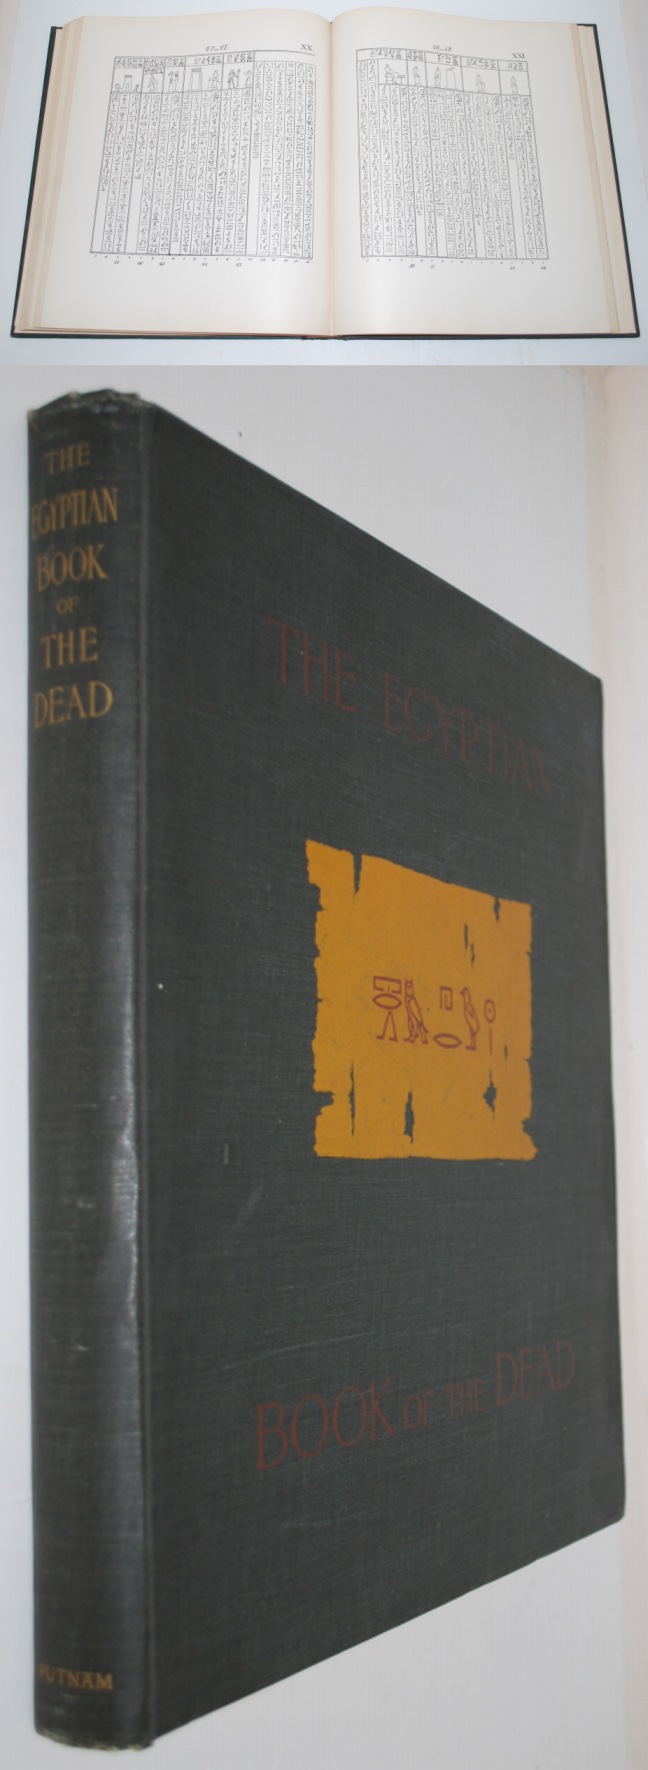 Image for The Egyptian Book of the Dead. A Complete Translation and Various Chapters on Its History, Symbolism Etc.